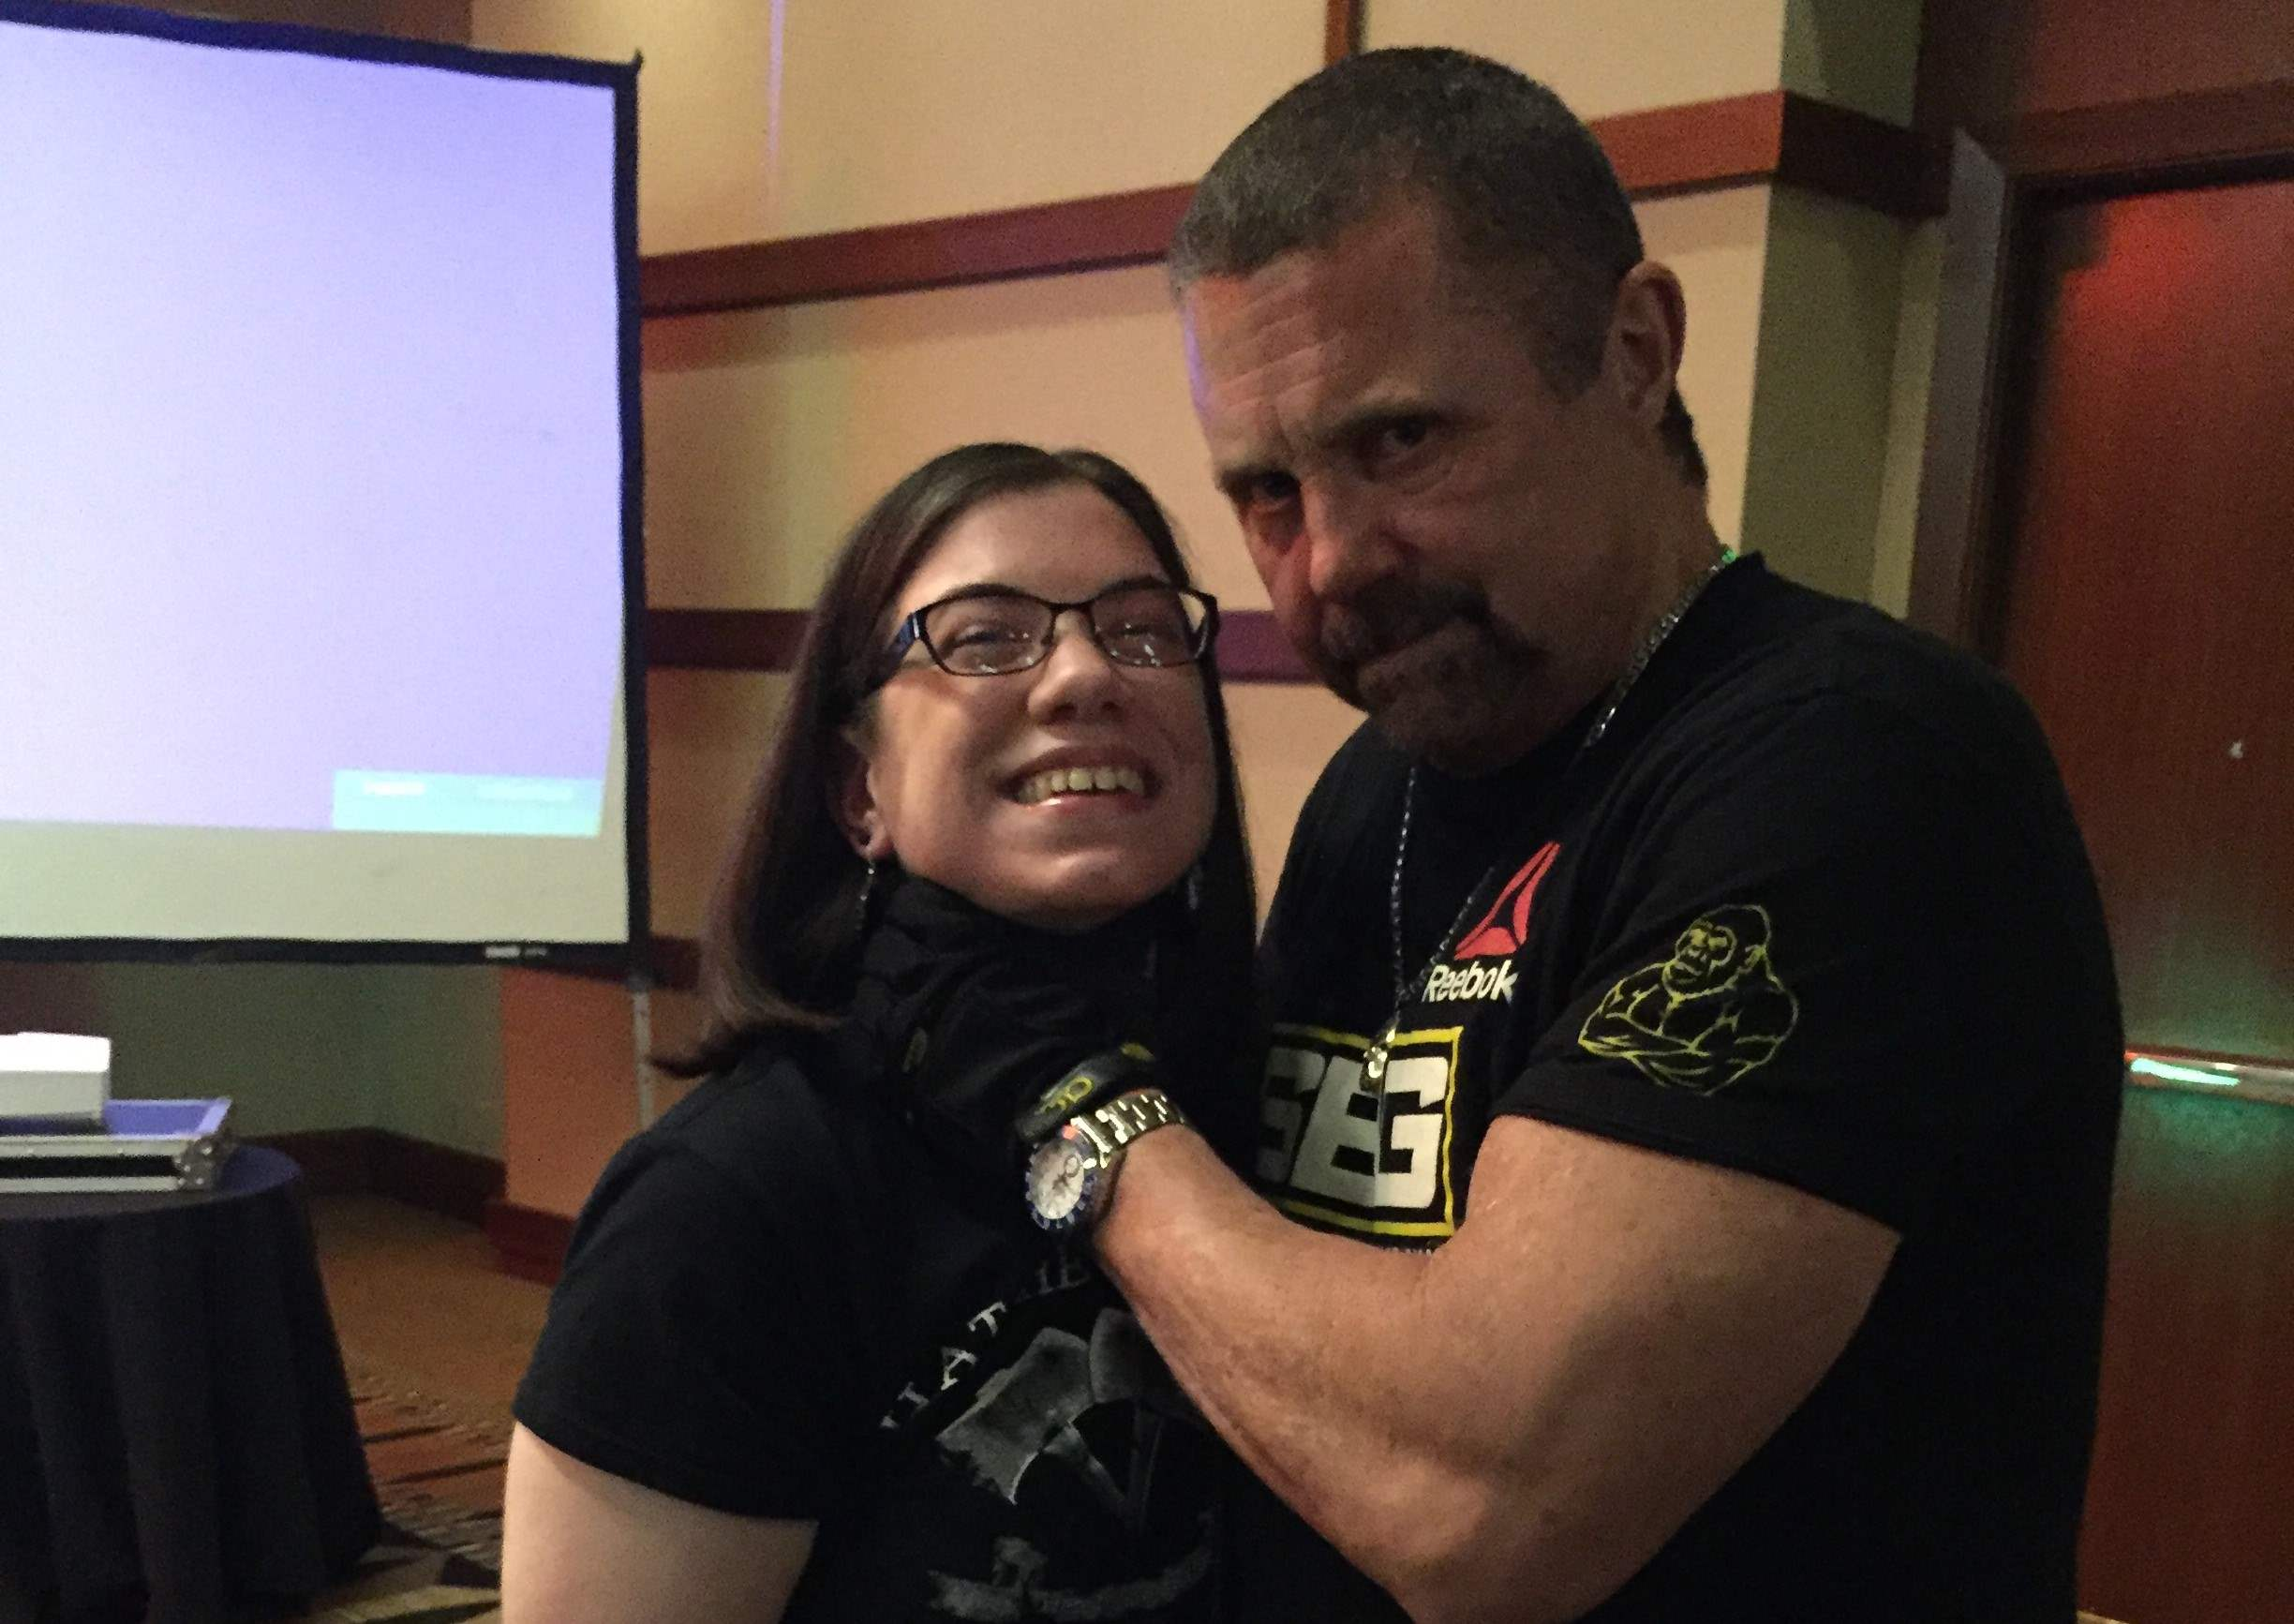 Kane Hodder puts his infamous chokehold on Michele at Texas Frightmare Weekend 2016